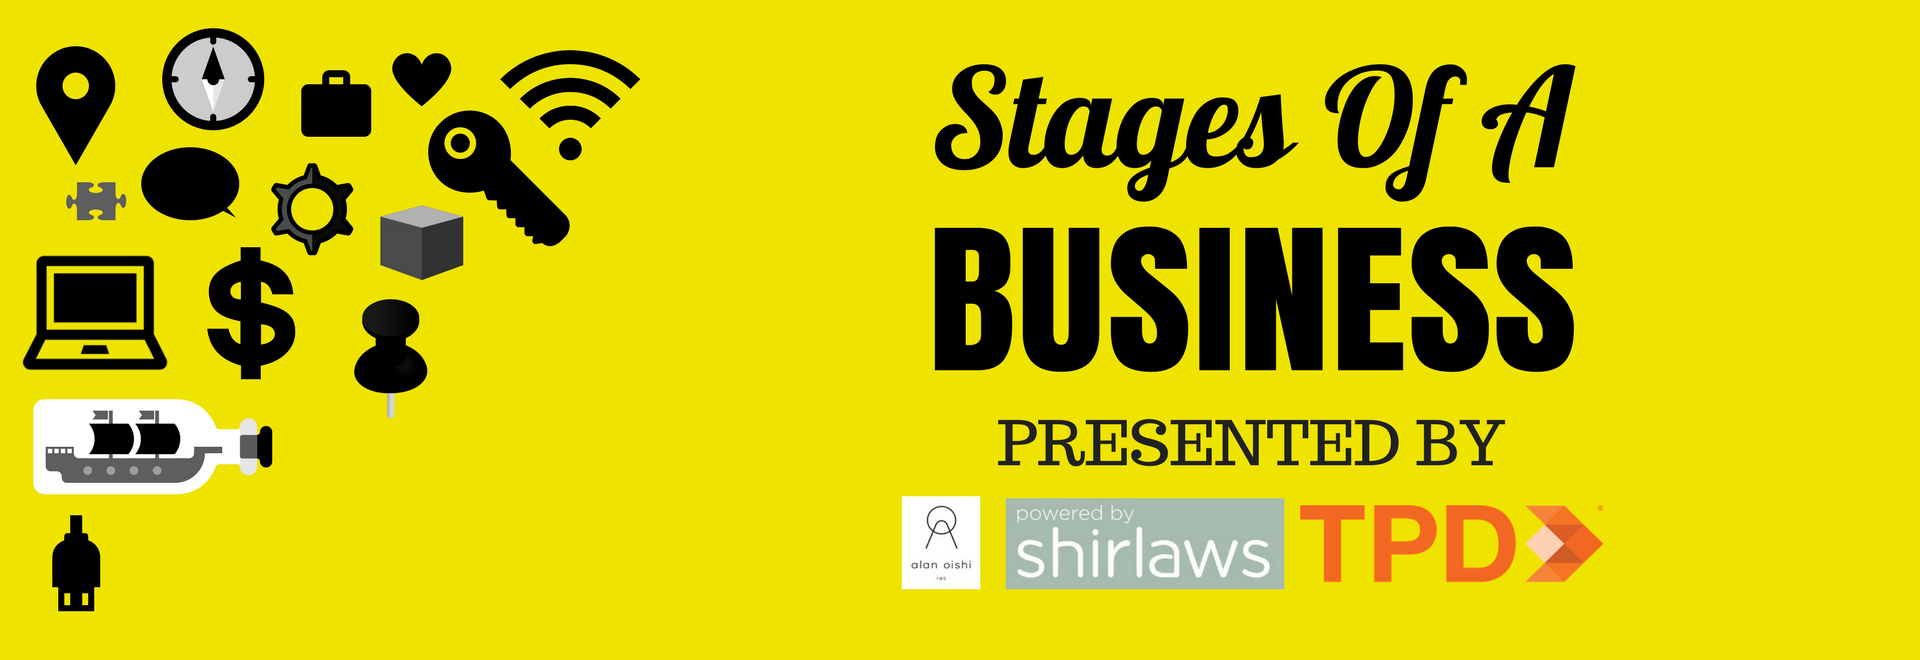 TPD.com | Online Training - Stages of a Business